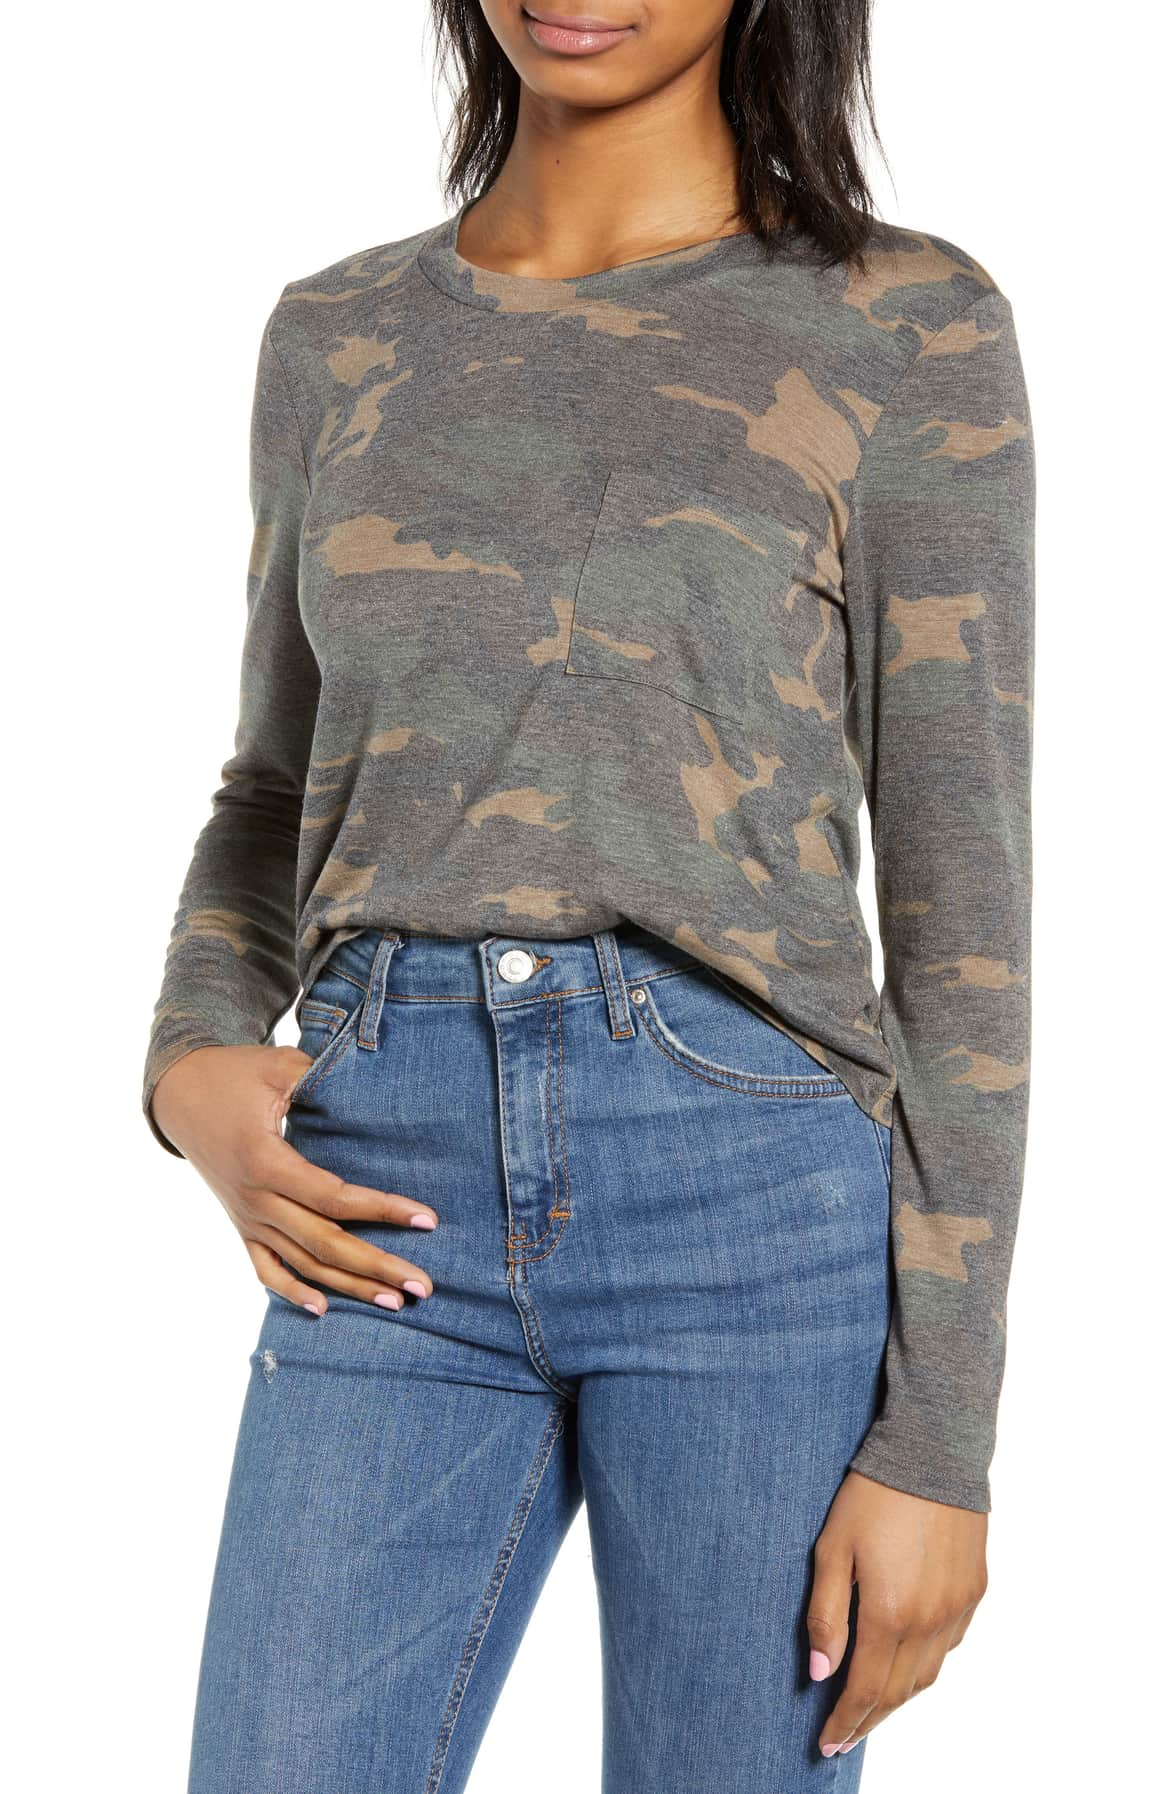 They can't pinch you if they can't see you (hehe){ } Camo T for the win!{ }$29 (Image: Nordstrom){ }